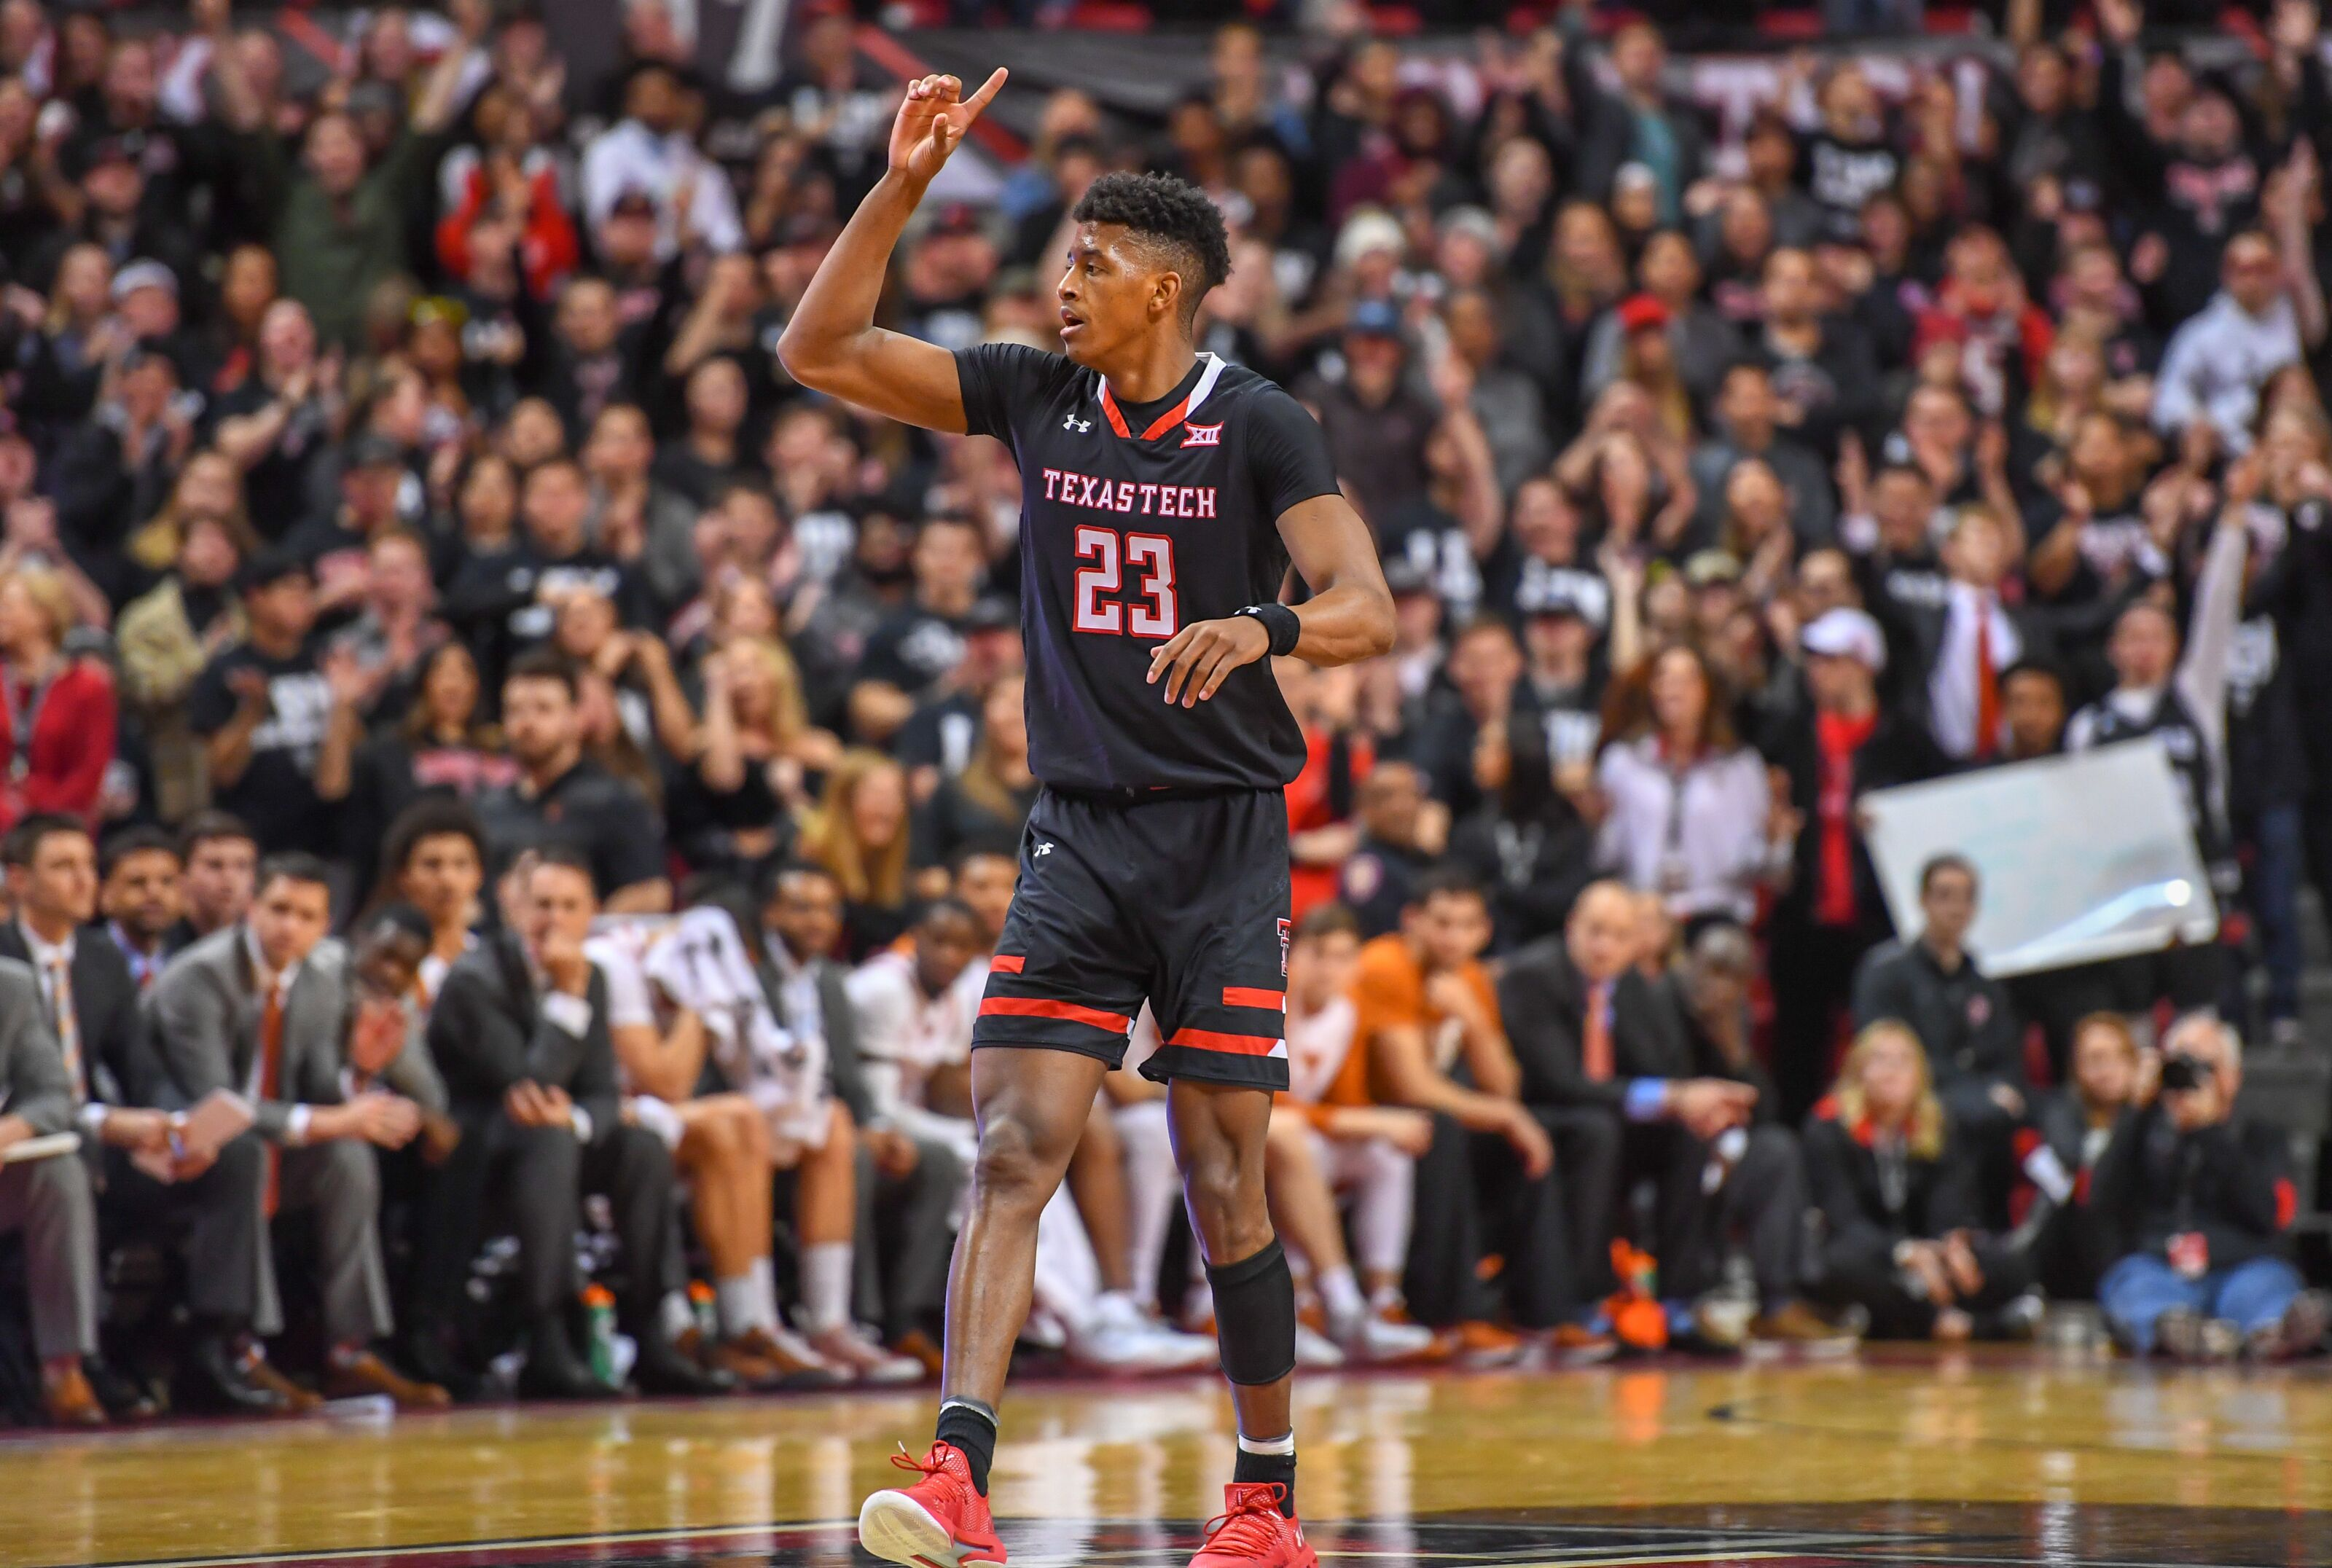 March Madness 2019: Buy or Sell Texas Tech, LSU, Purdue and Houston?